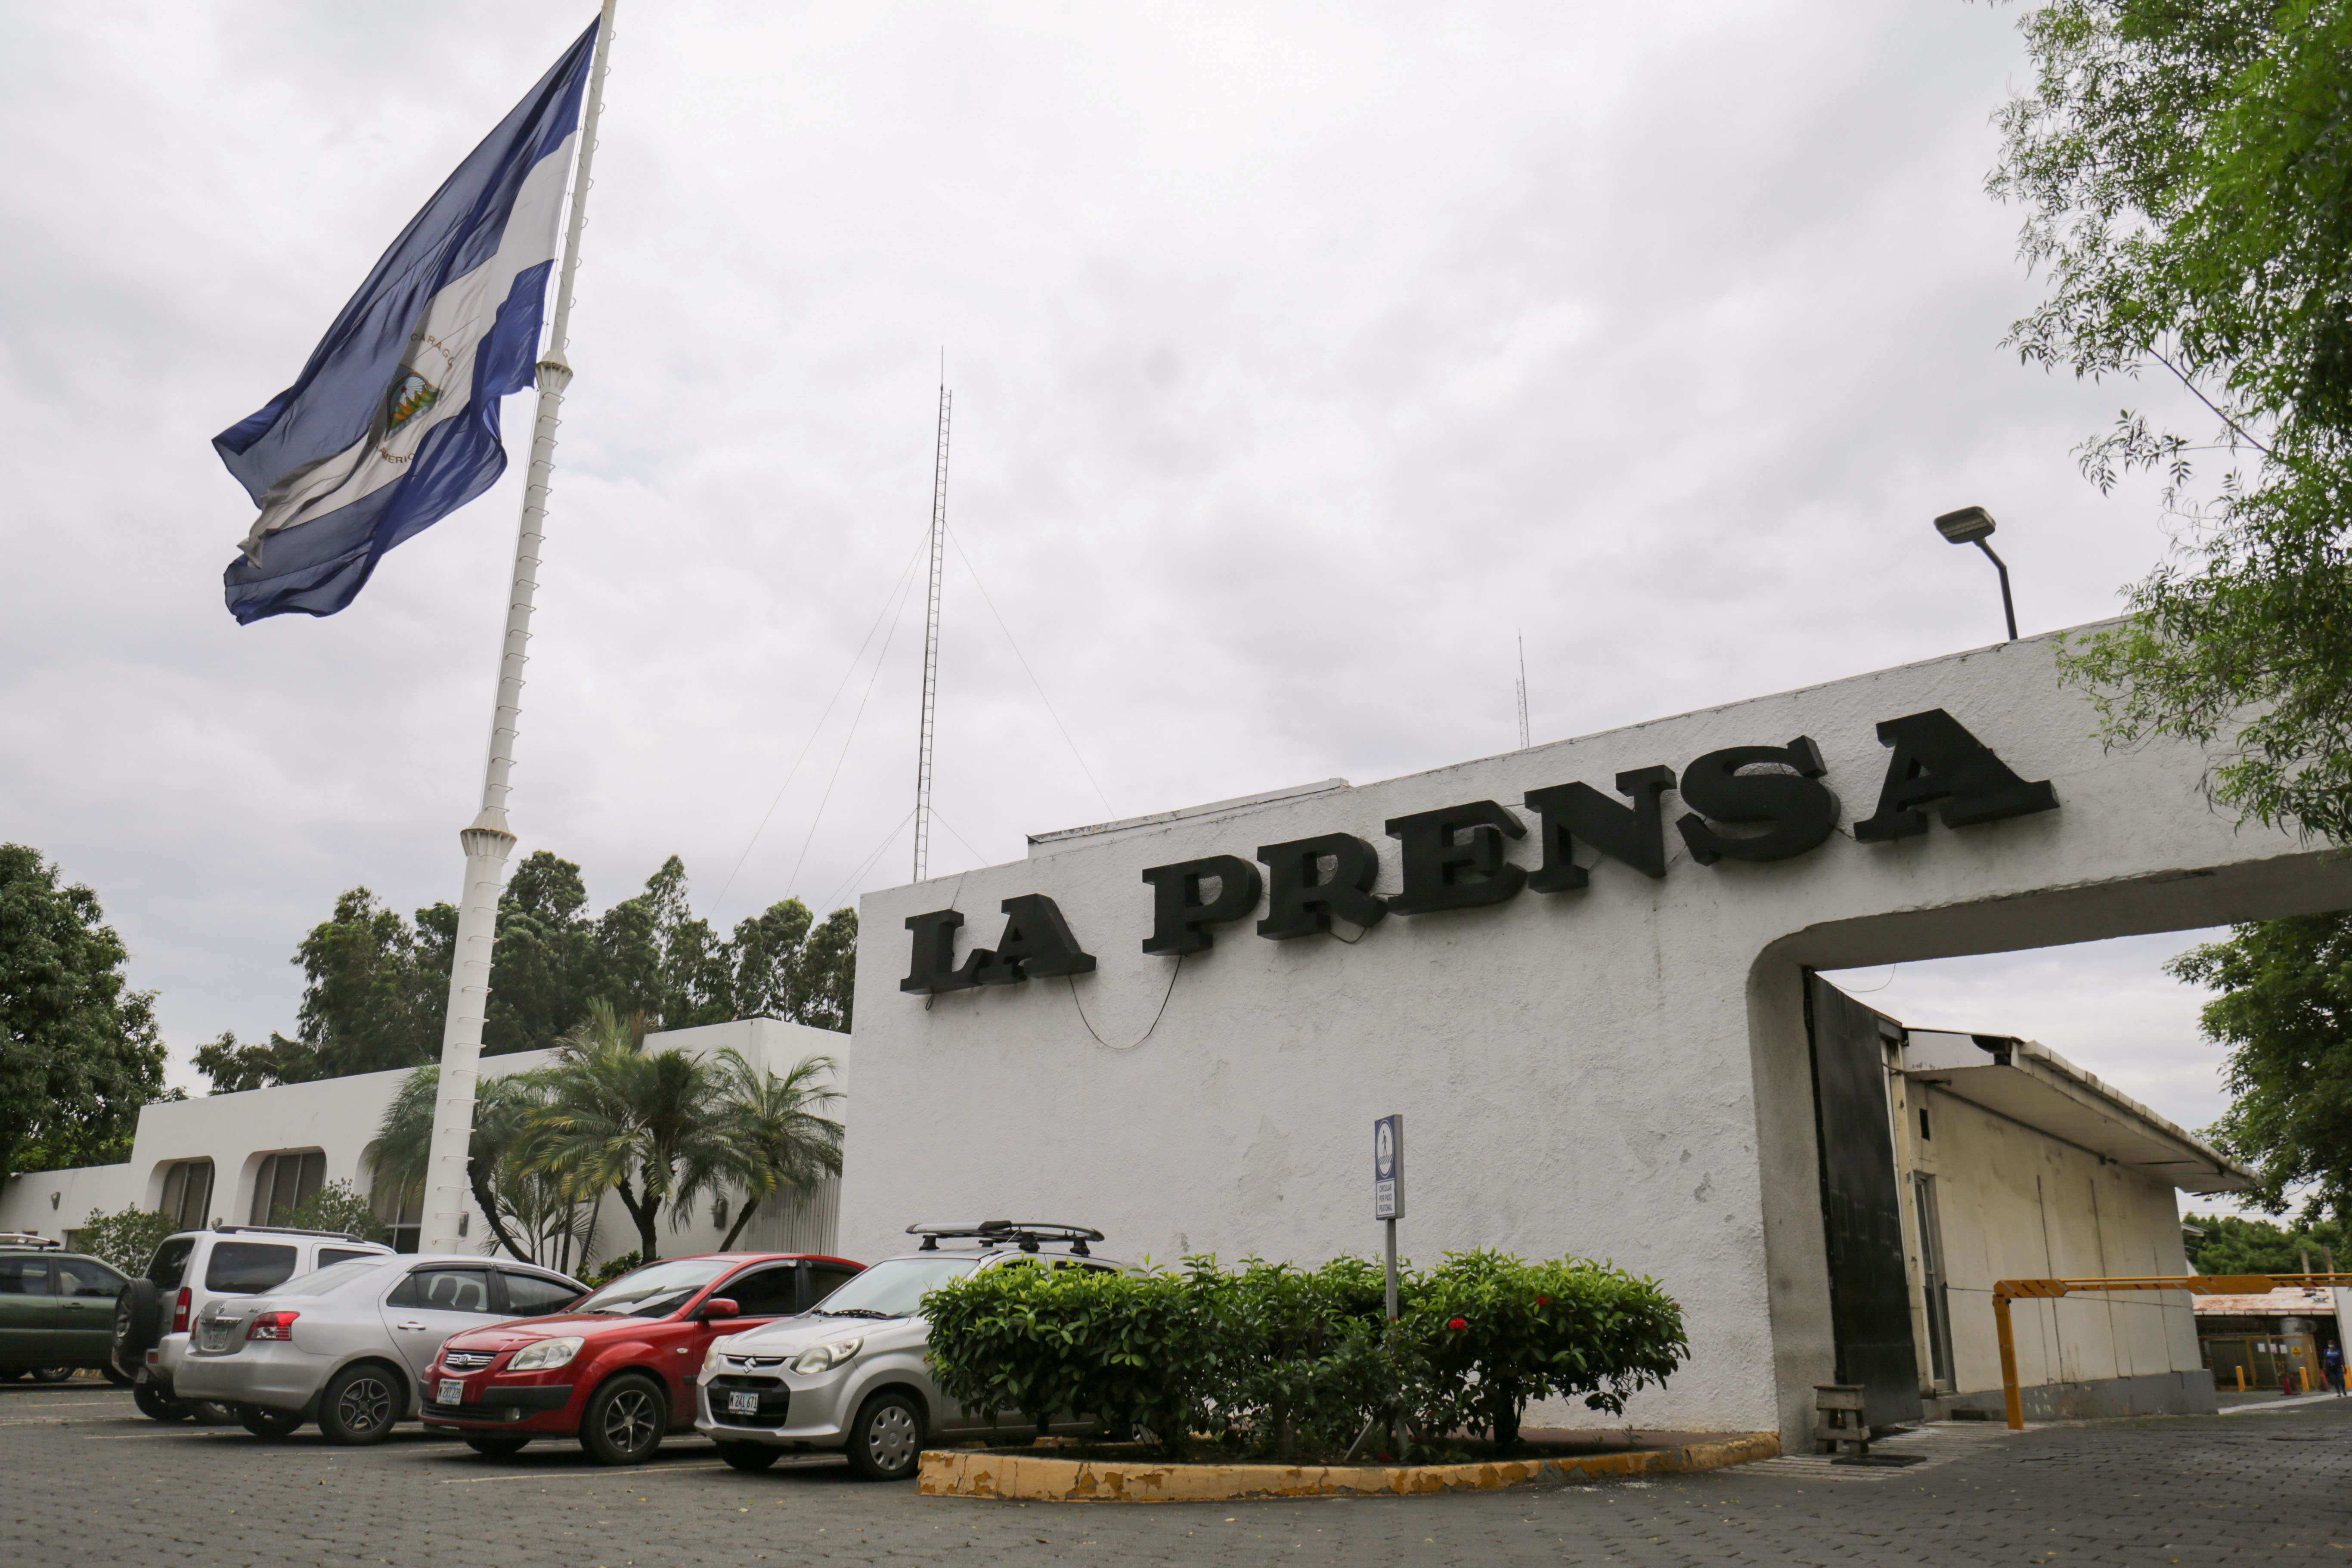 A view shows the facade of La Prensa, Nicaragua's only print newspaper, which will no longer issue a print edition complaining that the administration of President Daniel Ortega was withholding the paper it uses for publishing, in Managua, Nicaragua August 12, 2021. REUTERS/Maynor Valenzuela